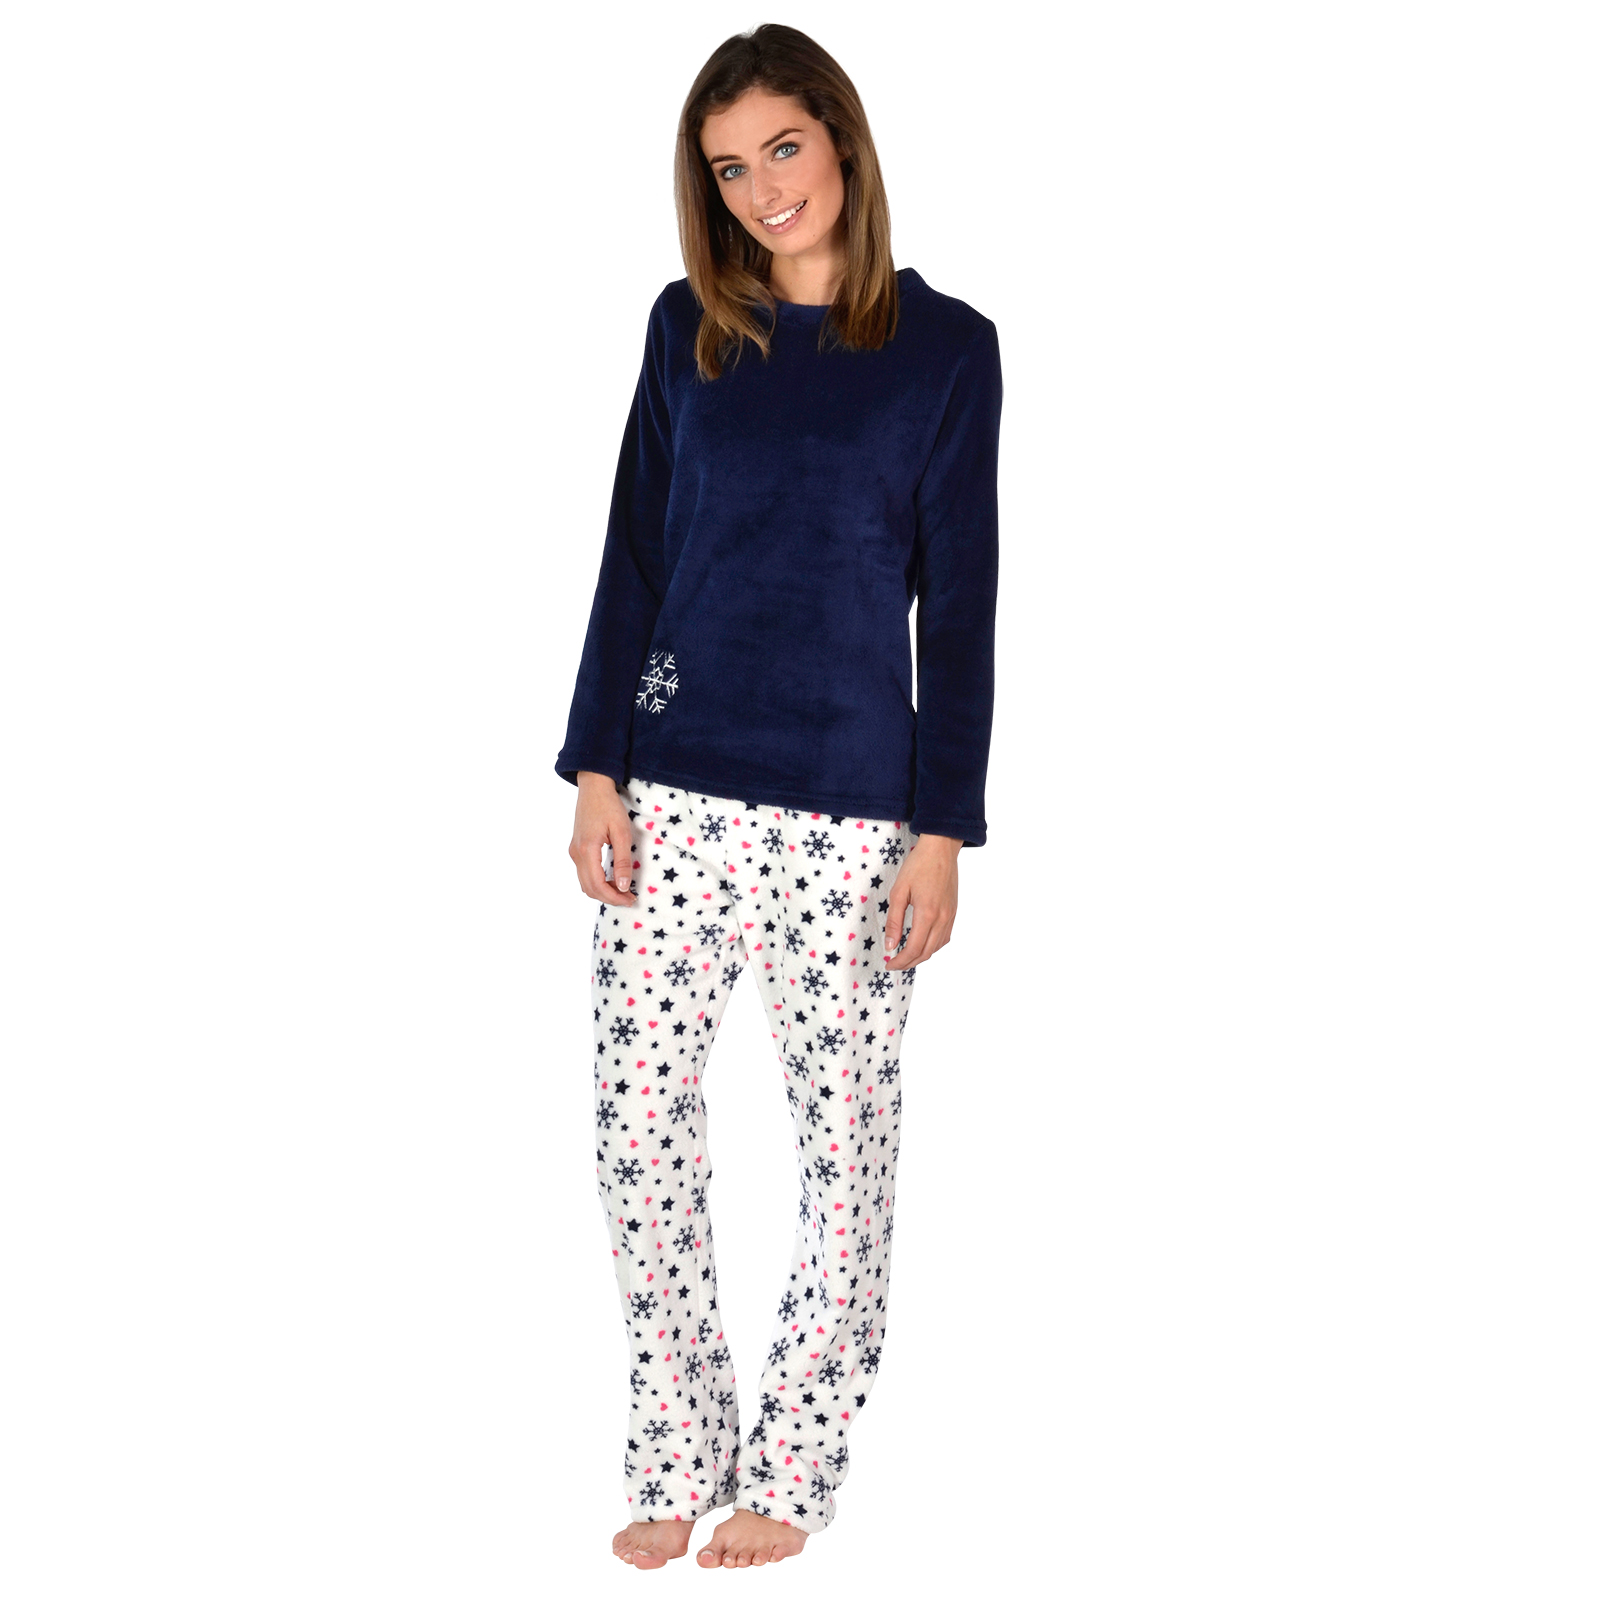 La S Fleece Pyjama Set Pjs Top Amp Bottoms Nightwear